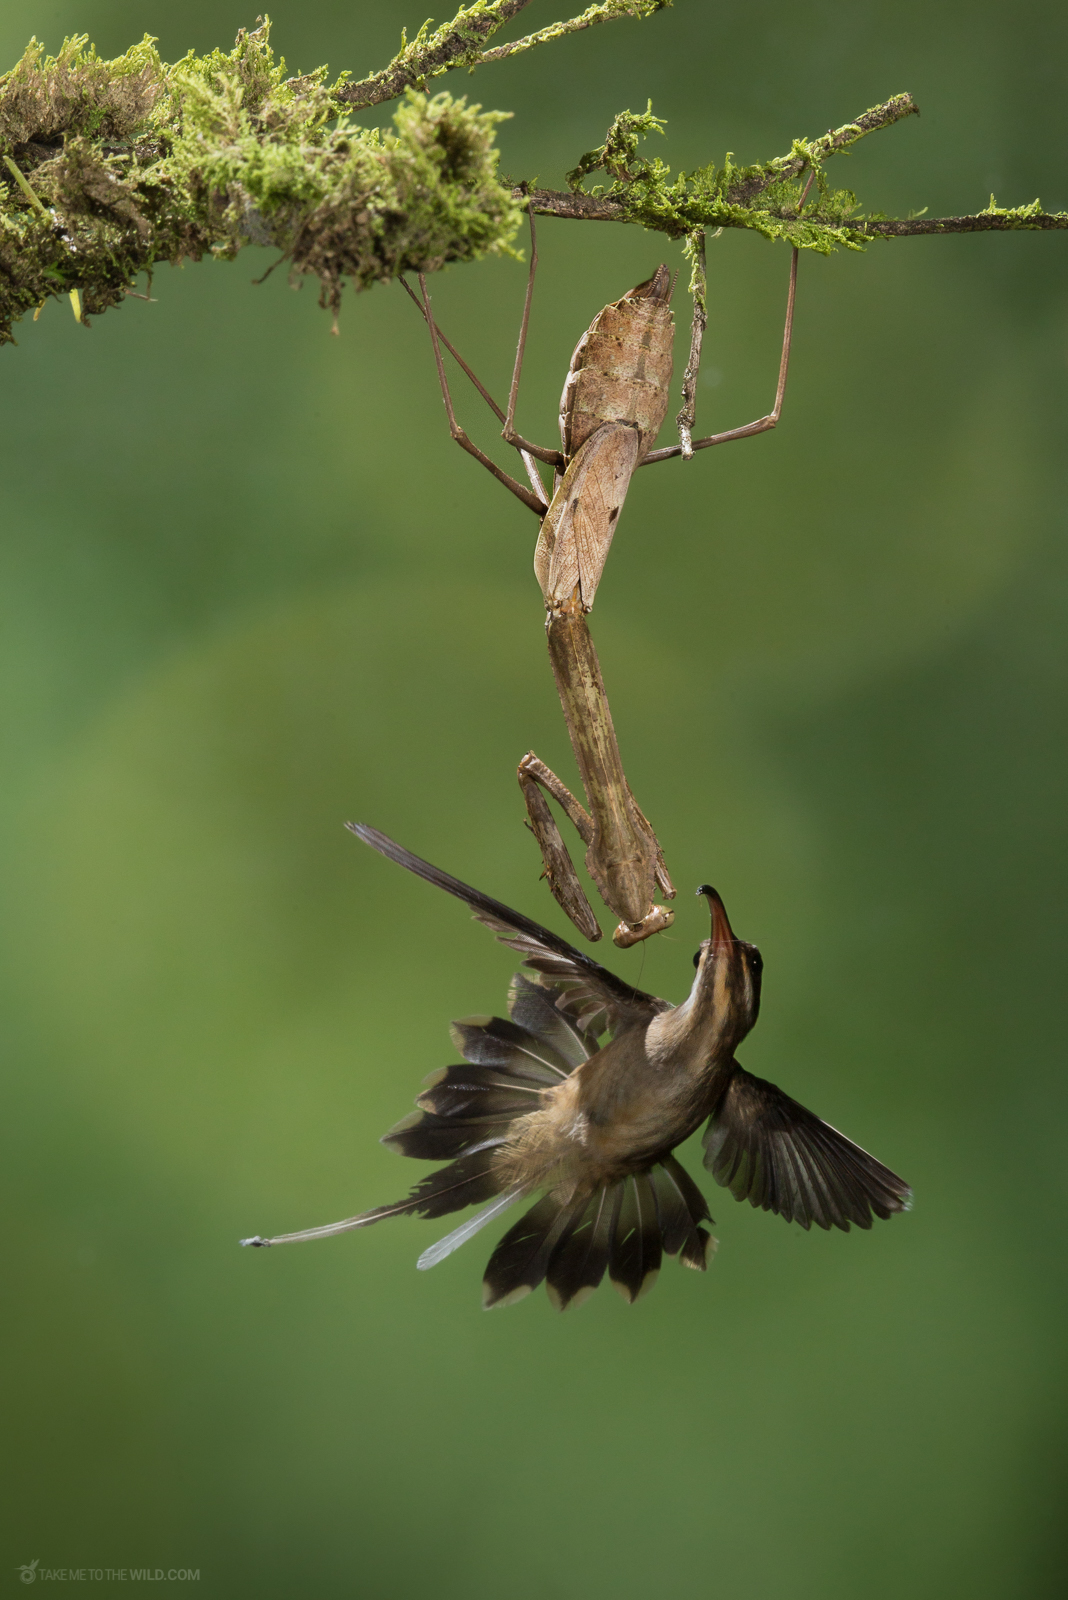 Long-billed Hermit (Phaethornis longirostris) pushing out of its terrytory a Mantis at the lowlands of Costa Rica